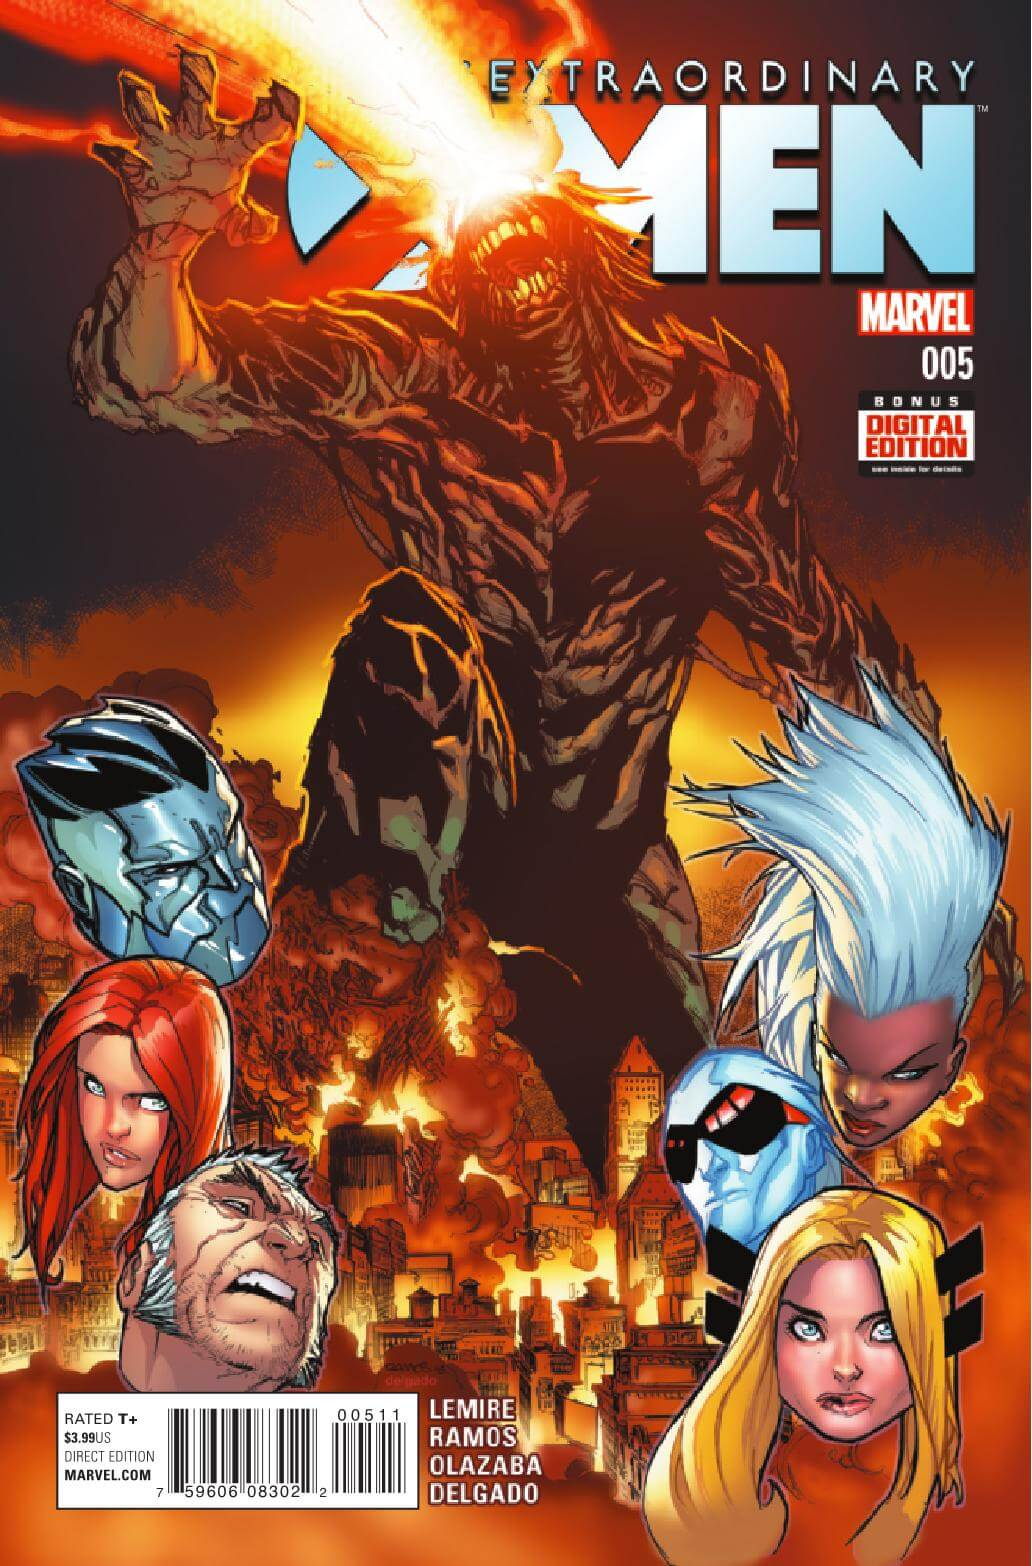 EXTRAORDINARY X-MEN #5